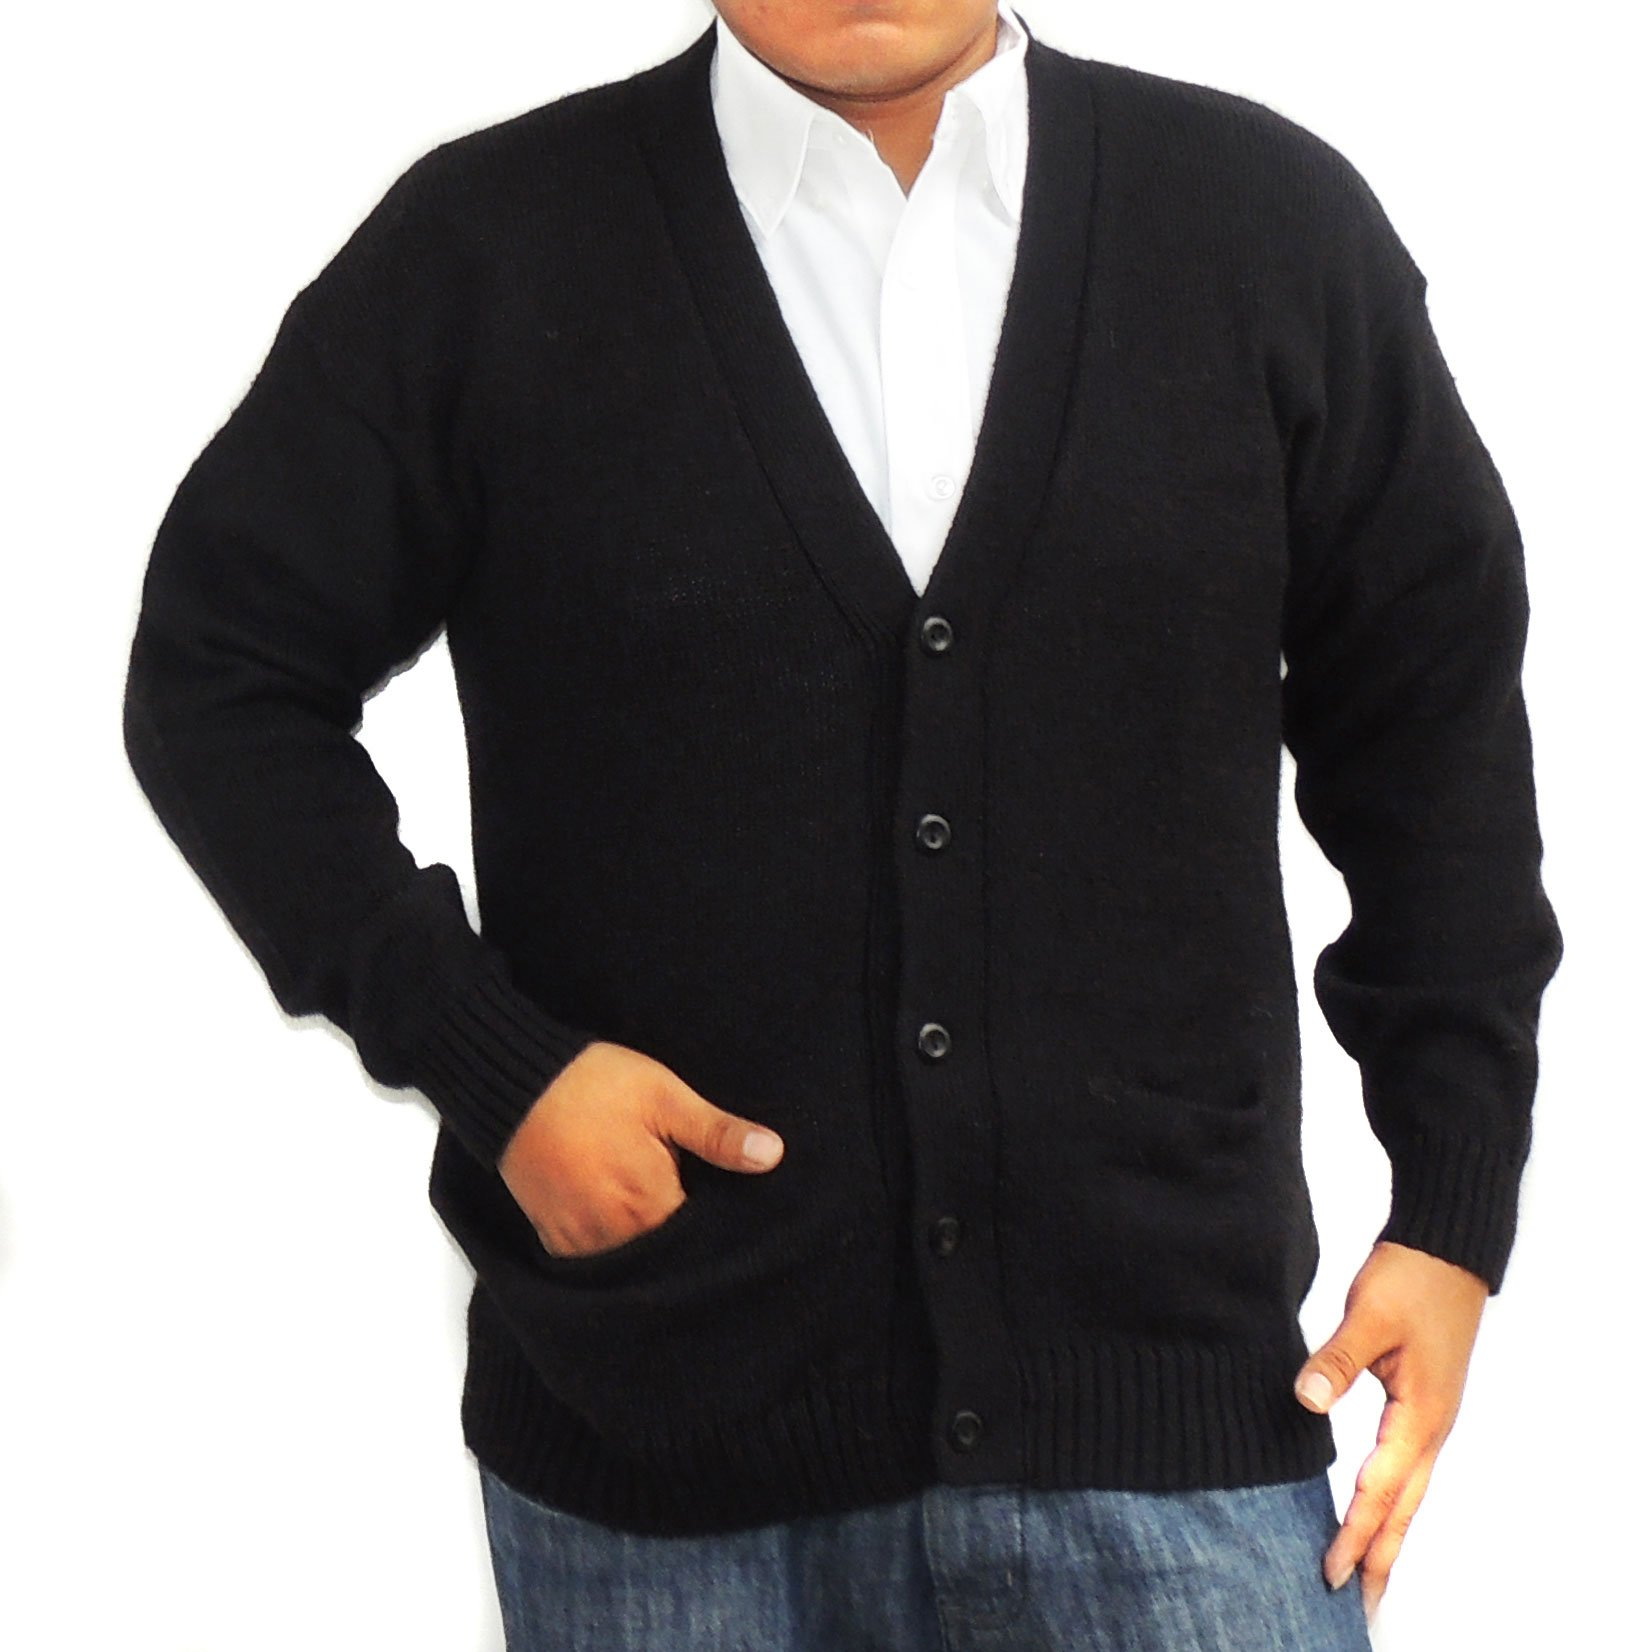 CELITAS DESIGN Alpaca Cardigan Golf Sweater Jersey V neck buttons and Pockets made in Peru Black M